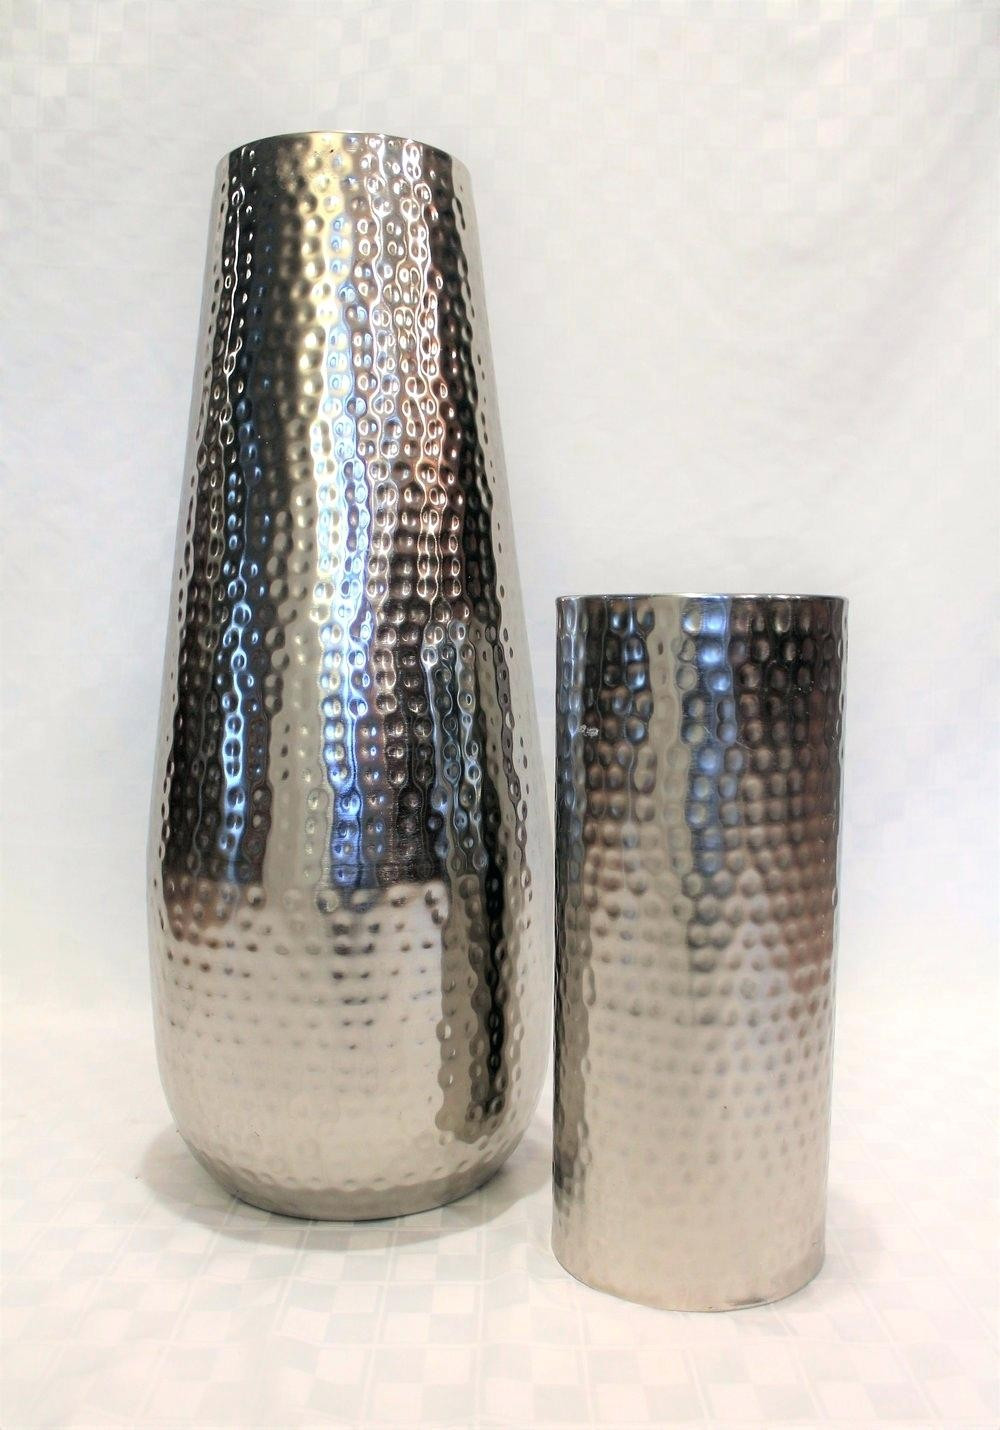 30 inch tall glass vases of silver vases wholesale pandoraocharms us with regard to silver vases wholesale glass bulk tall flower fl org